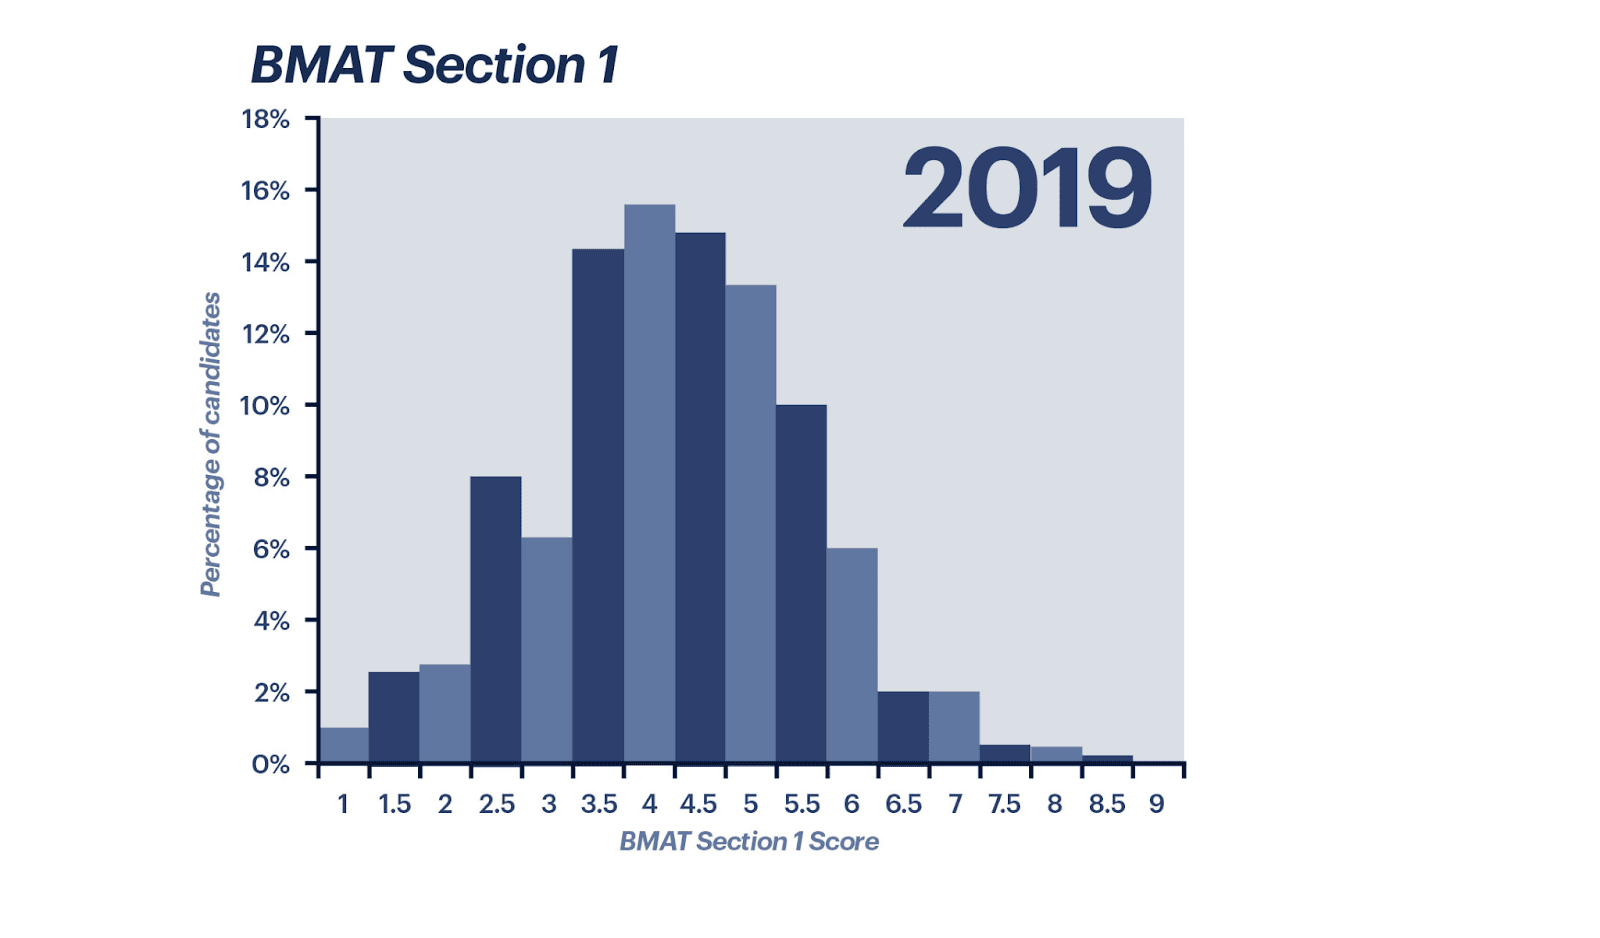 BMAT Section 1 scores from 2019